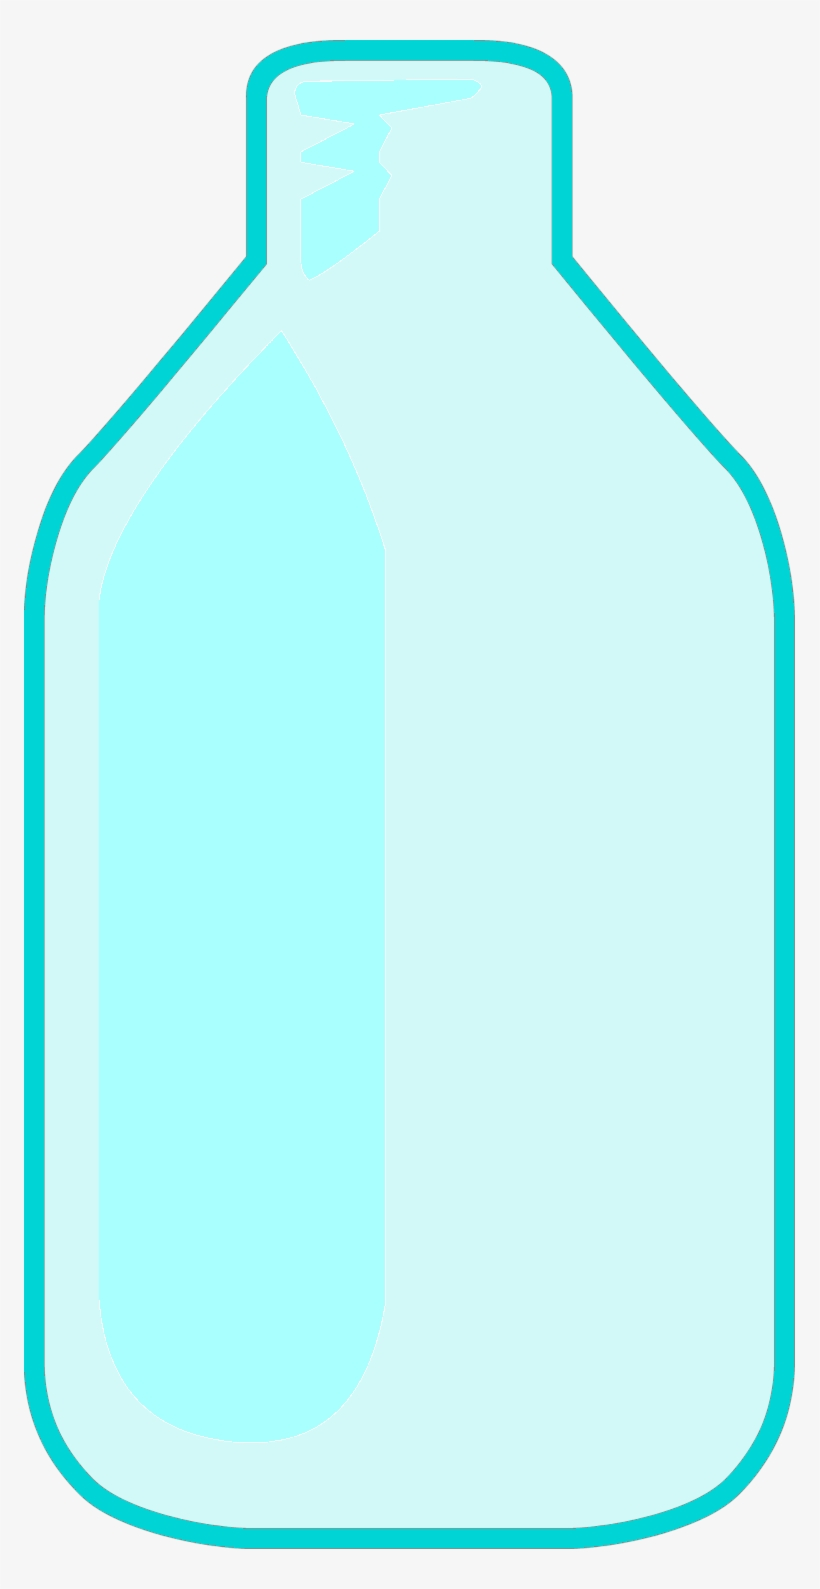 Snow Bottle Body - Bfb New Bottle Body - Free Transparent